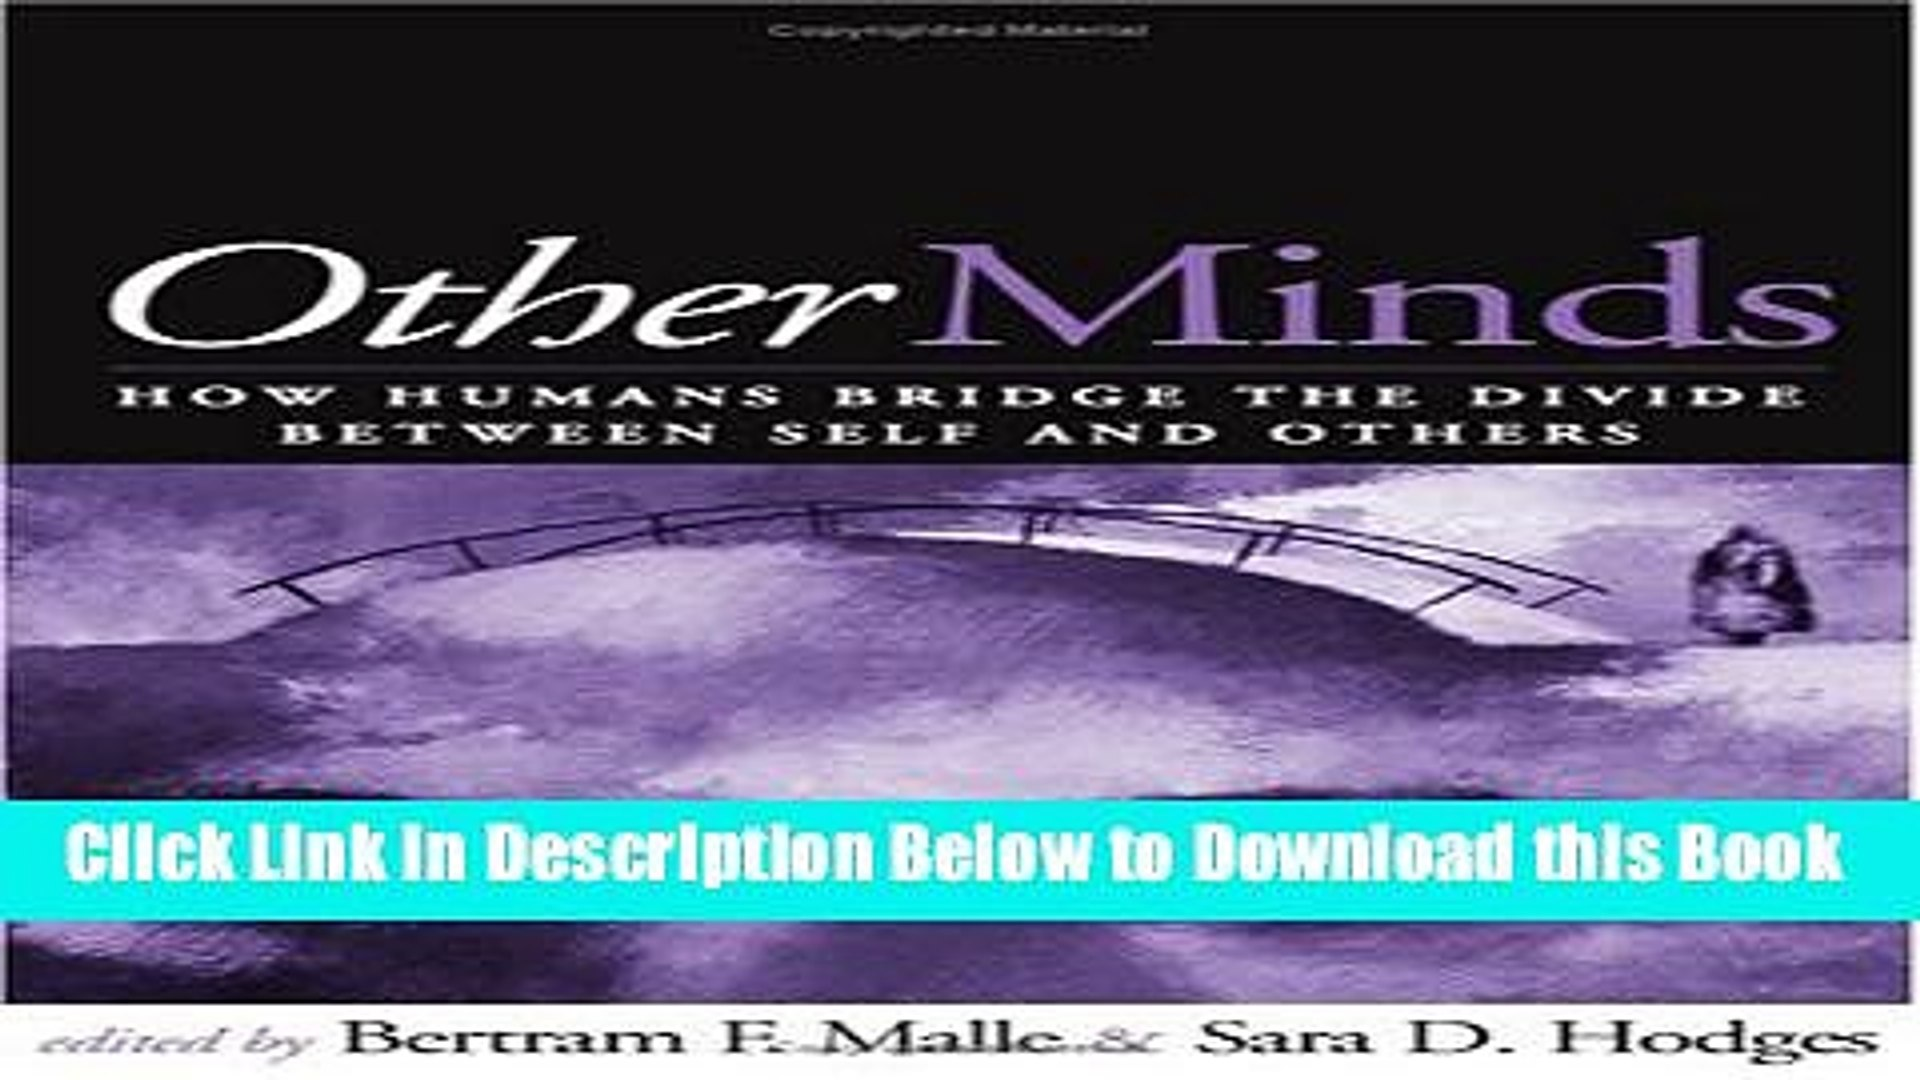 [Reads] Other Minds: How Humans Bridge the Divide between Self and Others Online Ebook